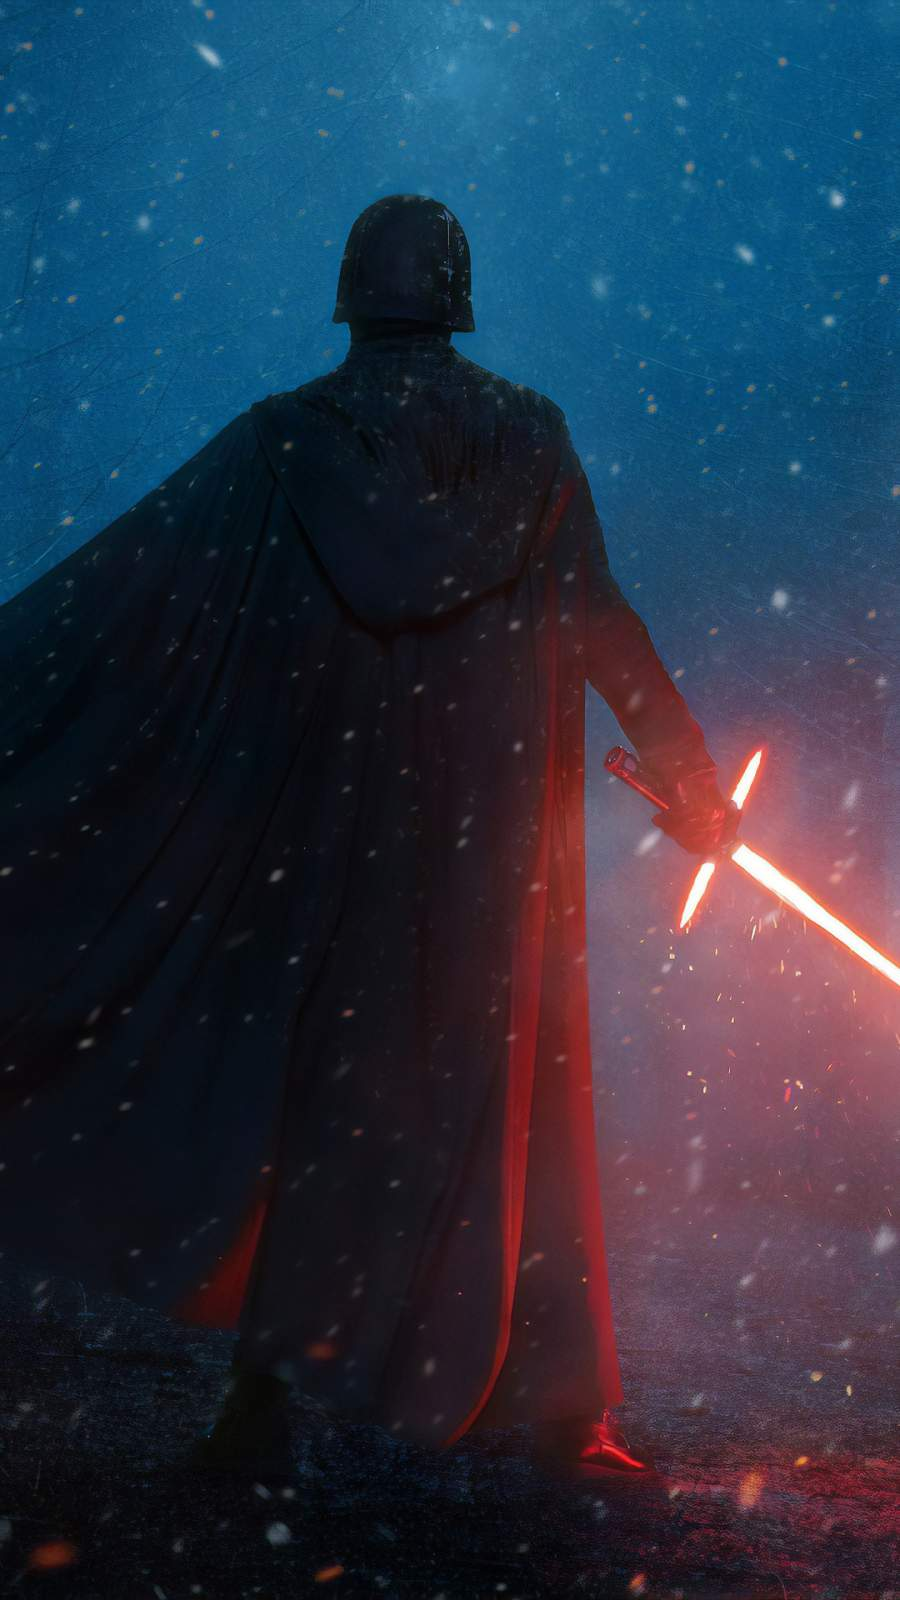 Star Wars Sword and Vader iPhone Wallpaper